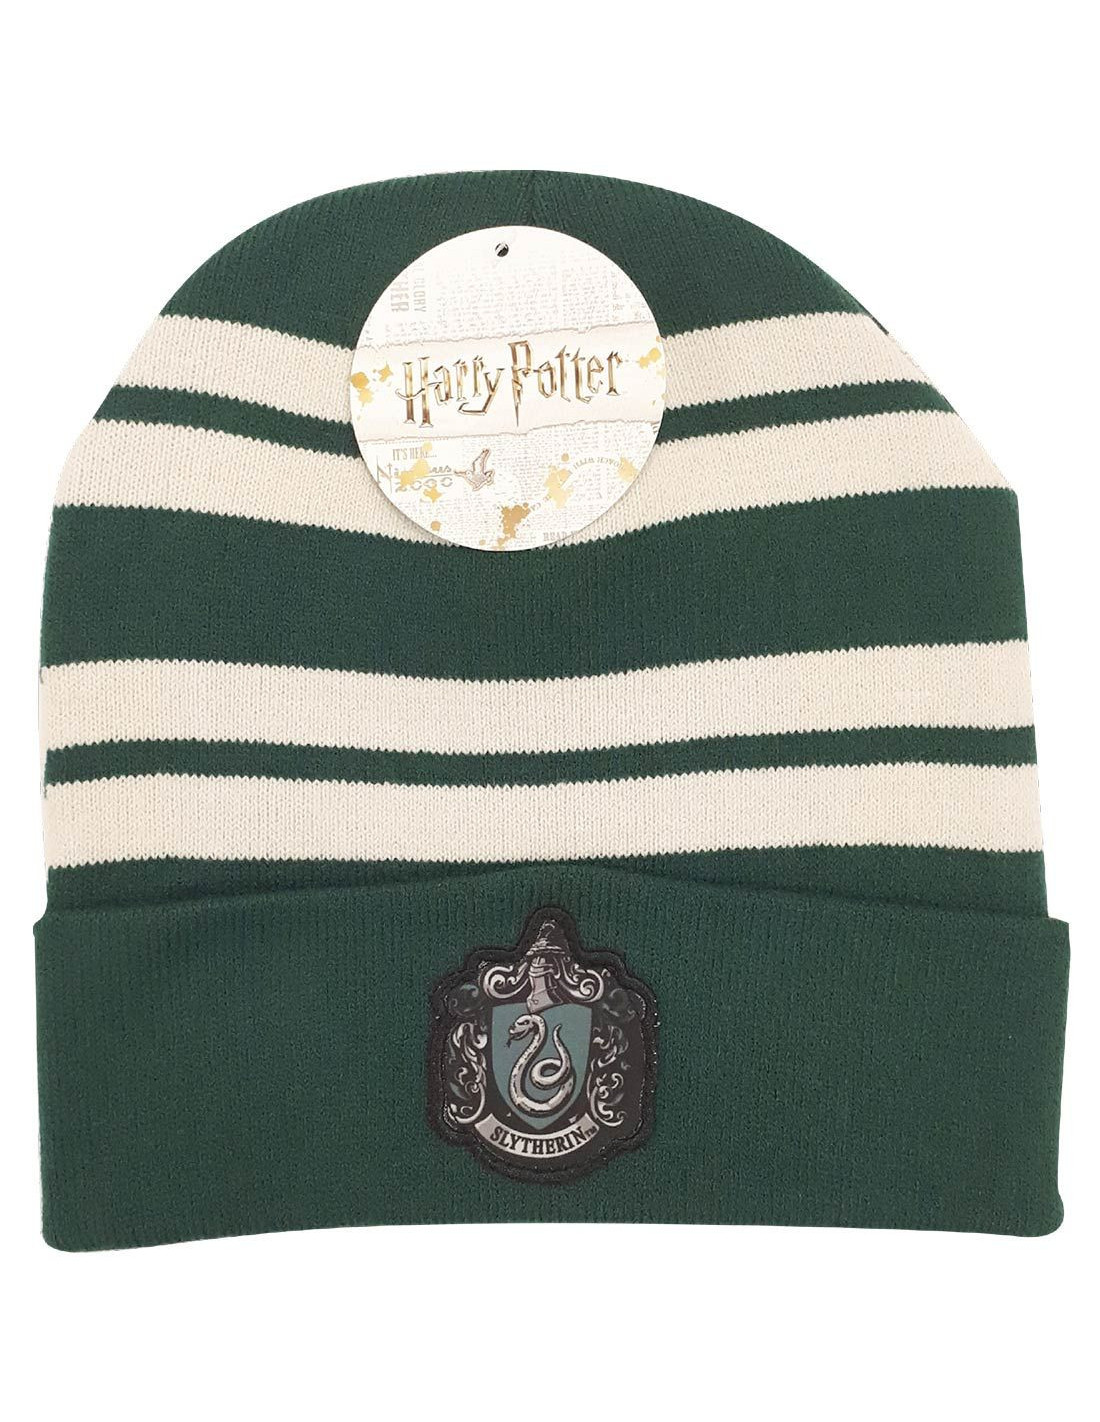 Harry Potter Beanie - Slytherin School 9a97953e640